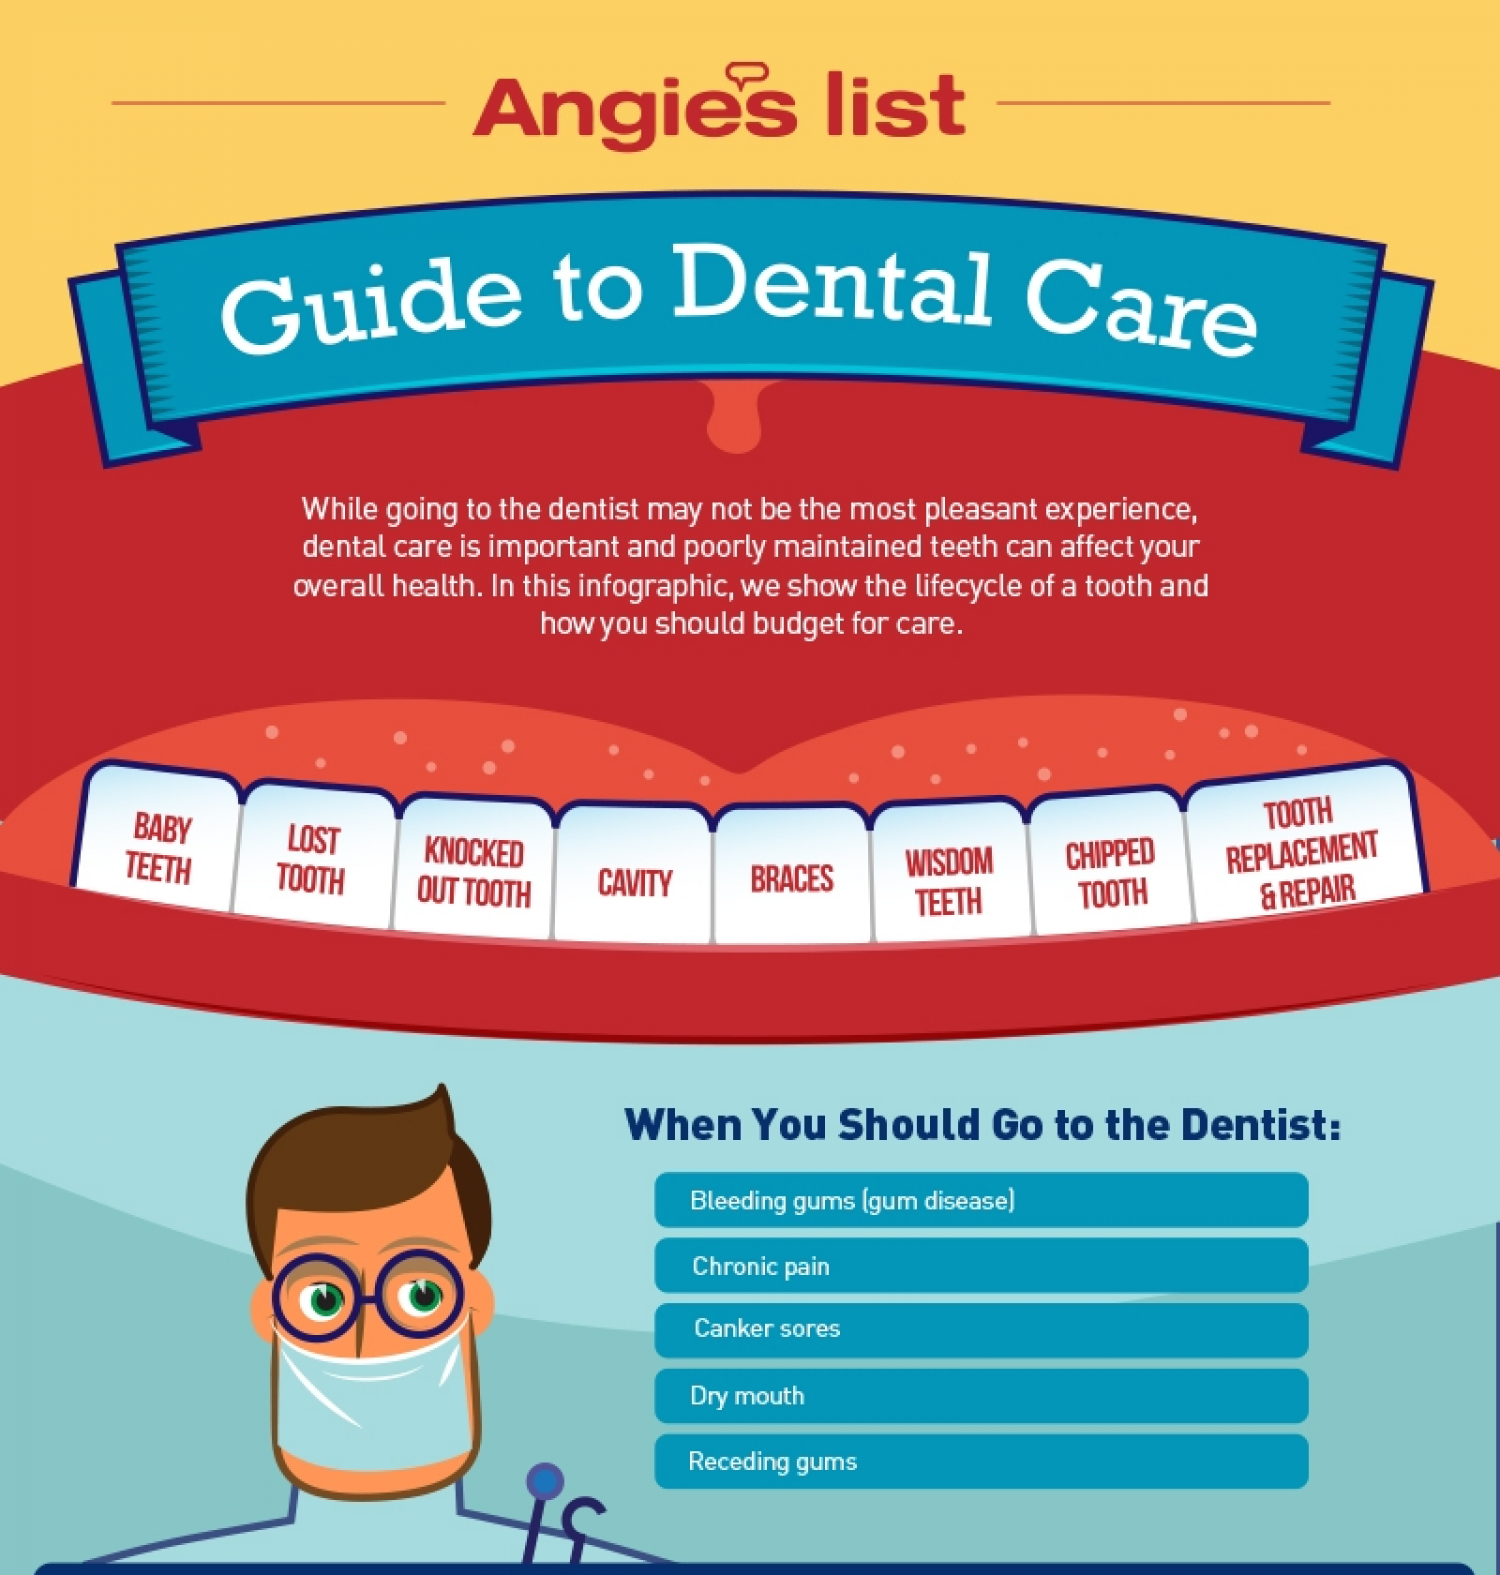 Guide to Dental Care Infographic